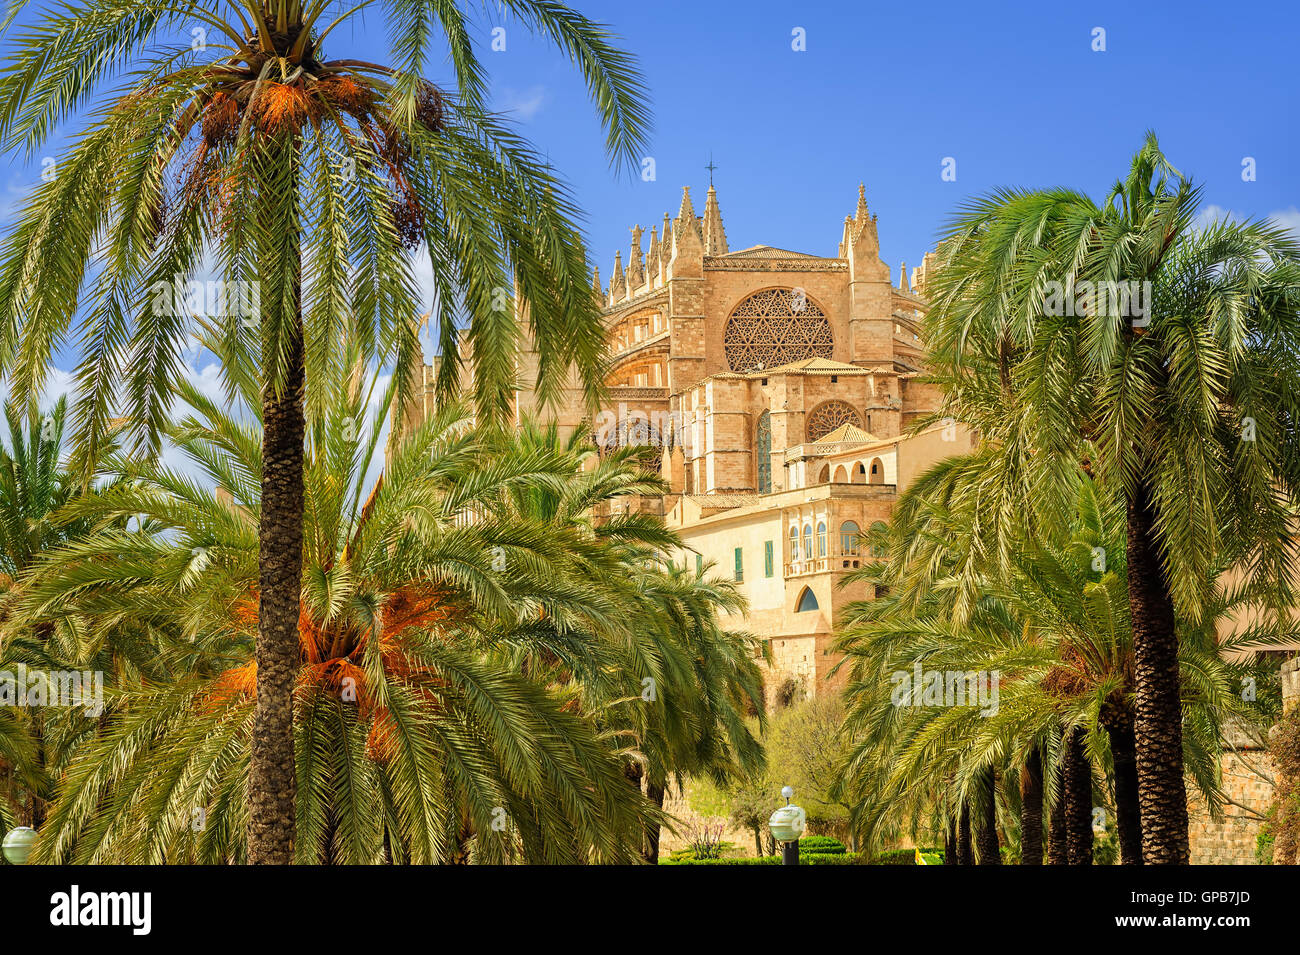 La Seu, the medieval gothic cathedral of Palma de Mallorca, in the palm tree garden, Spain - Stock Image